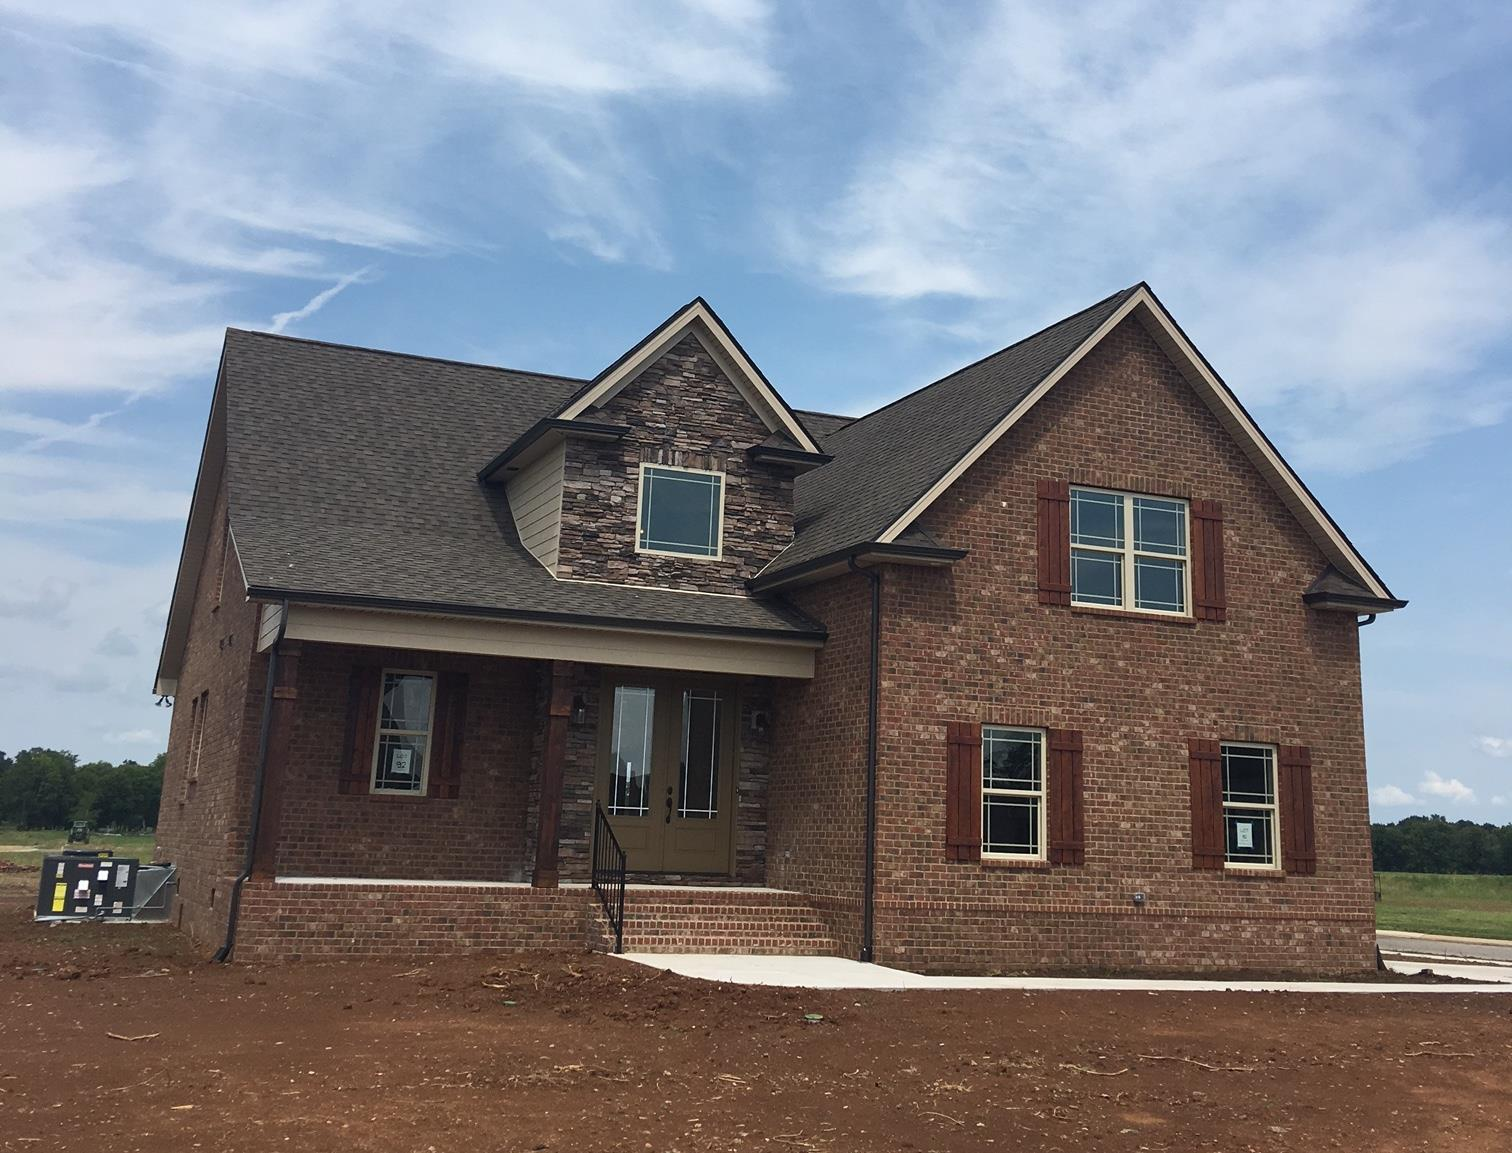 Photo of 3905 Merryman Lane Lot 92  Murfreesboro  TN